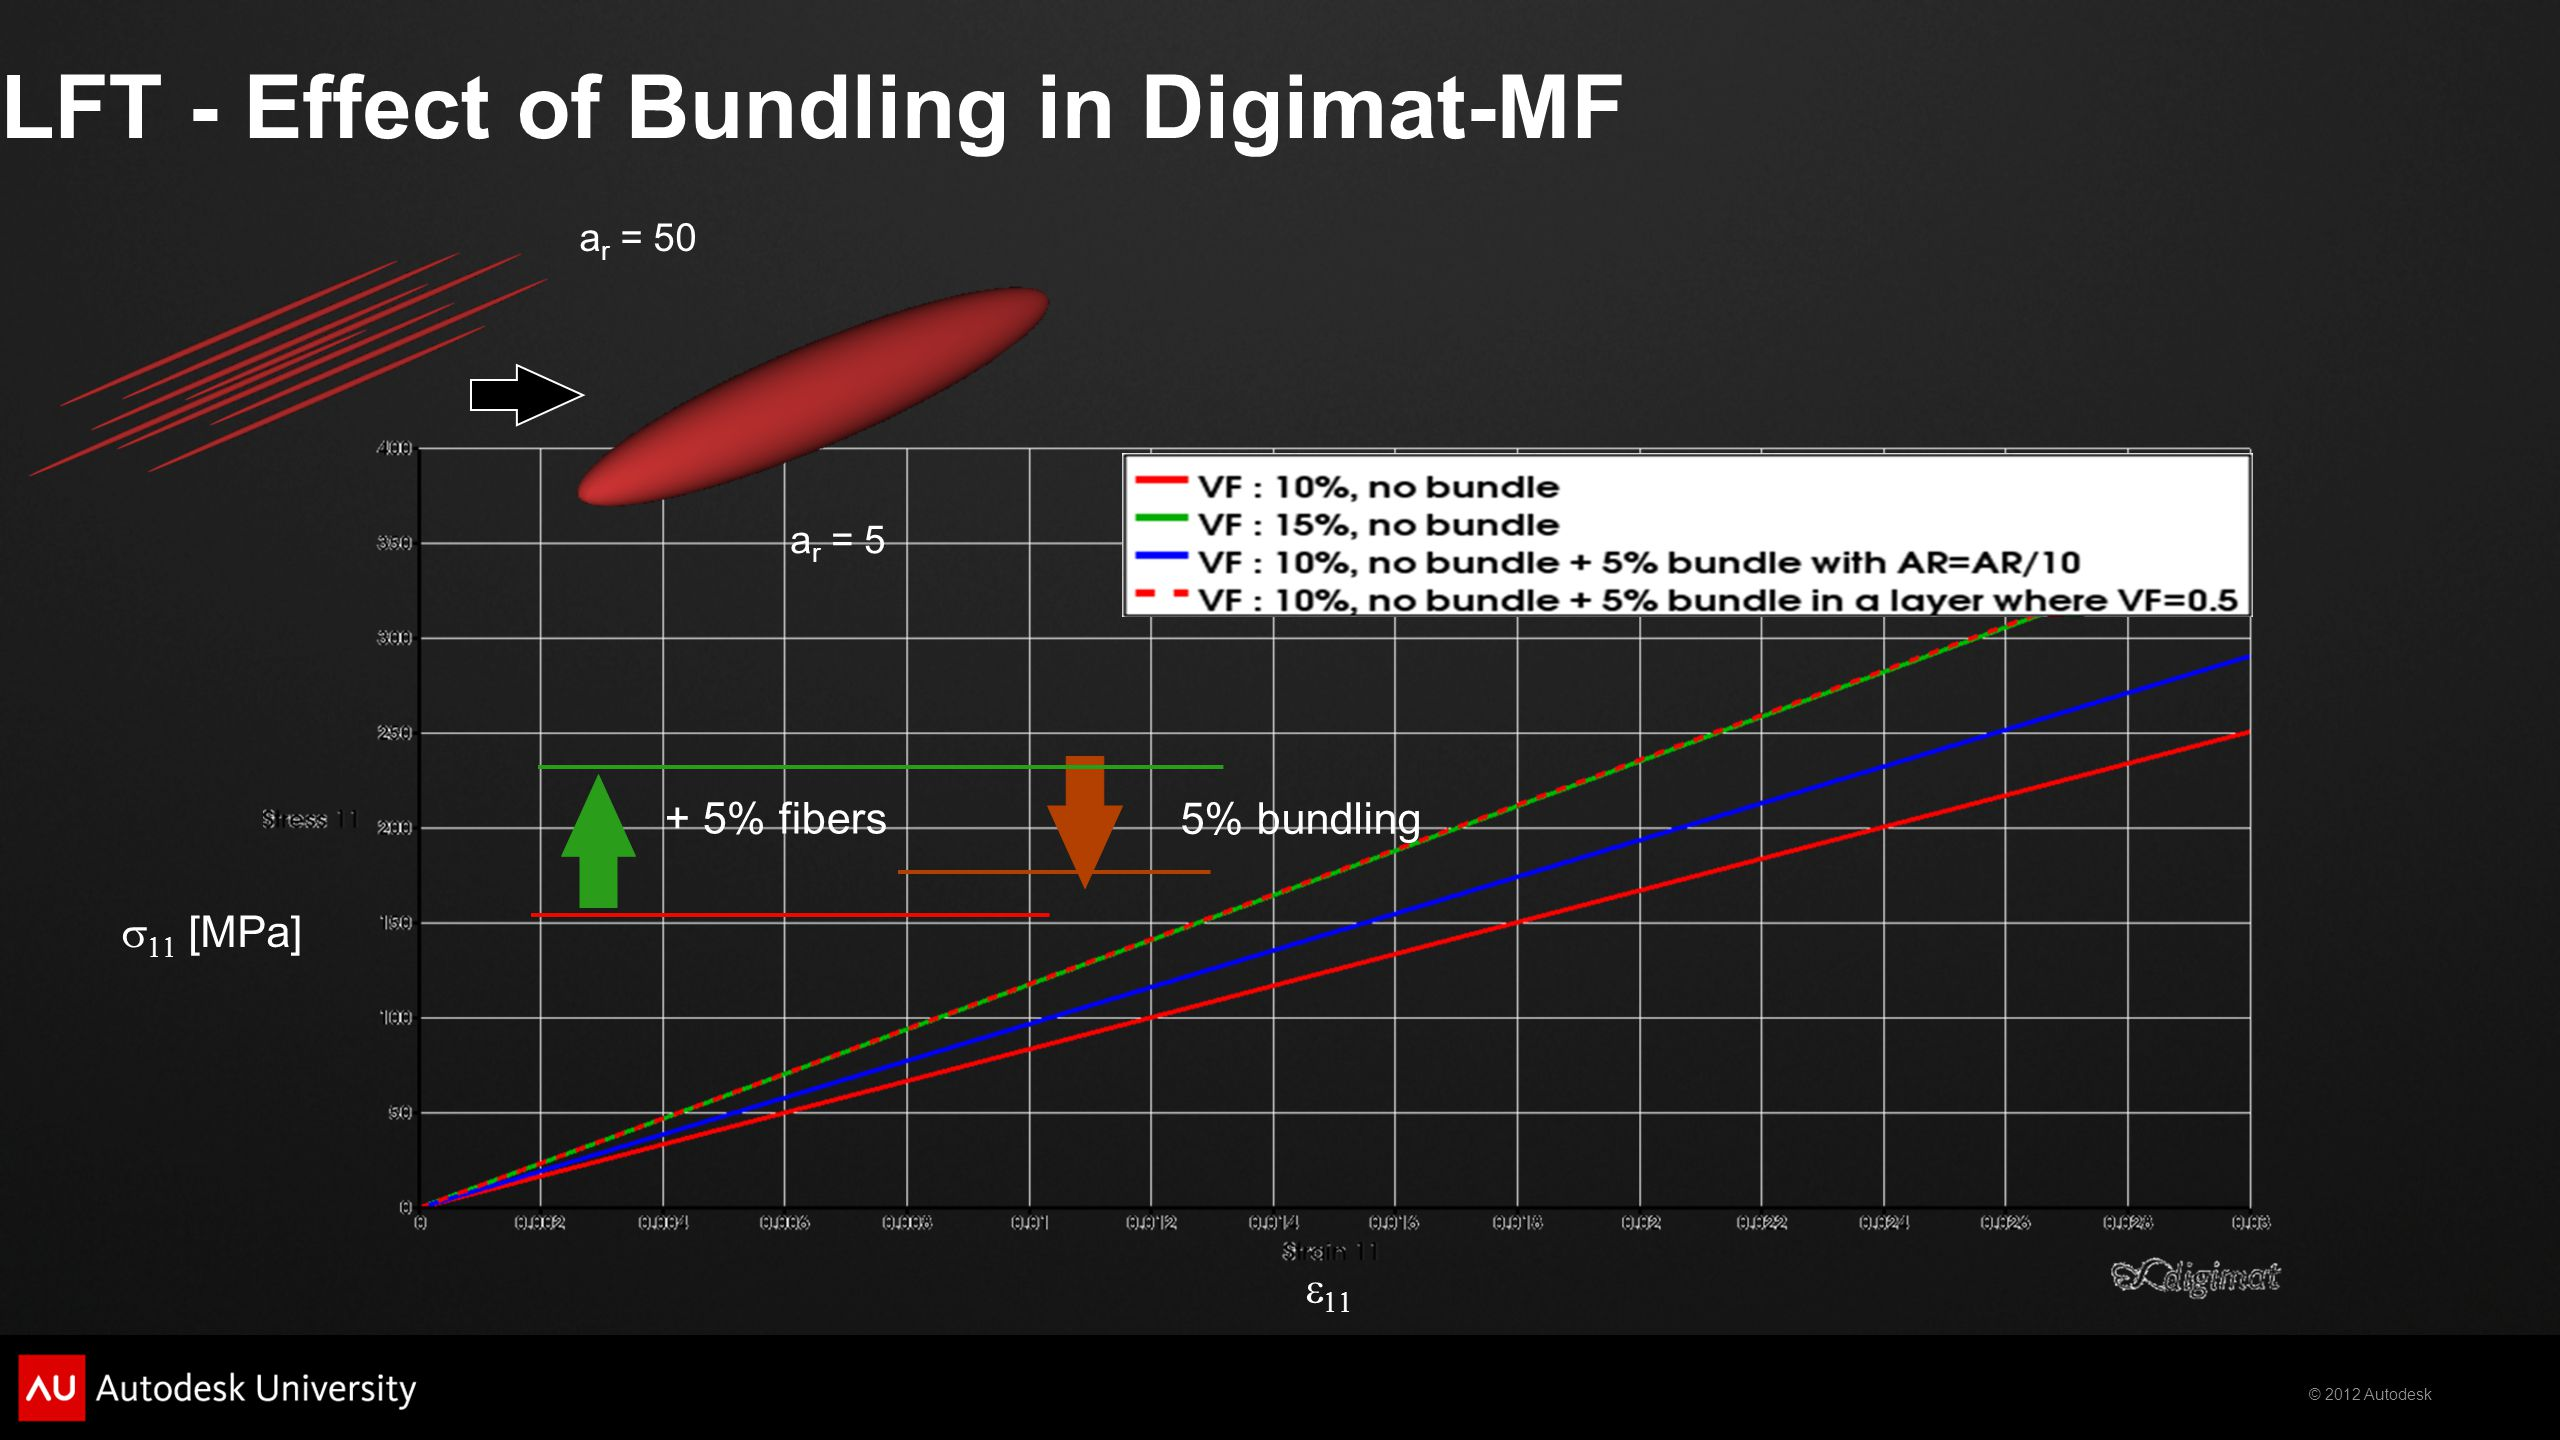 LFT - Effect of Bundling in Digimat-MF